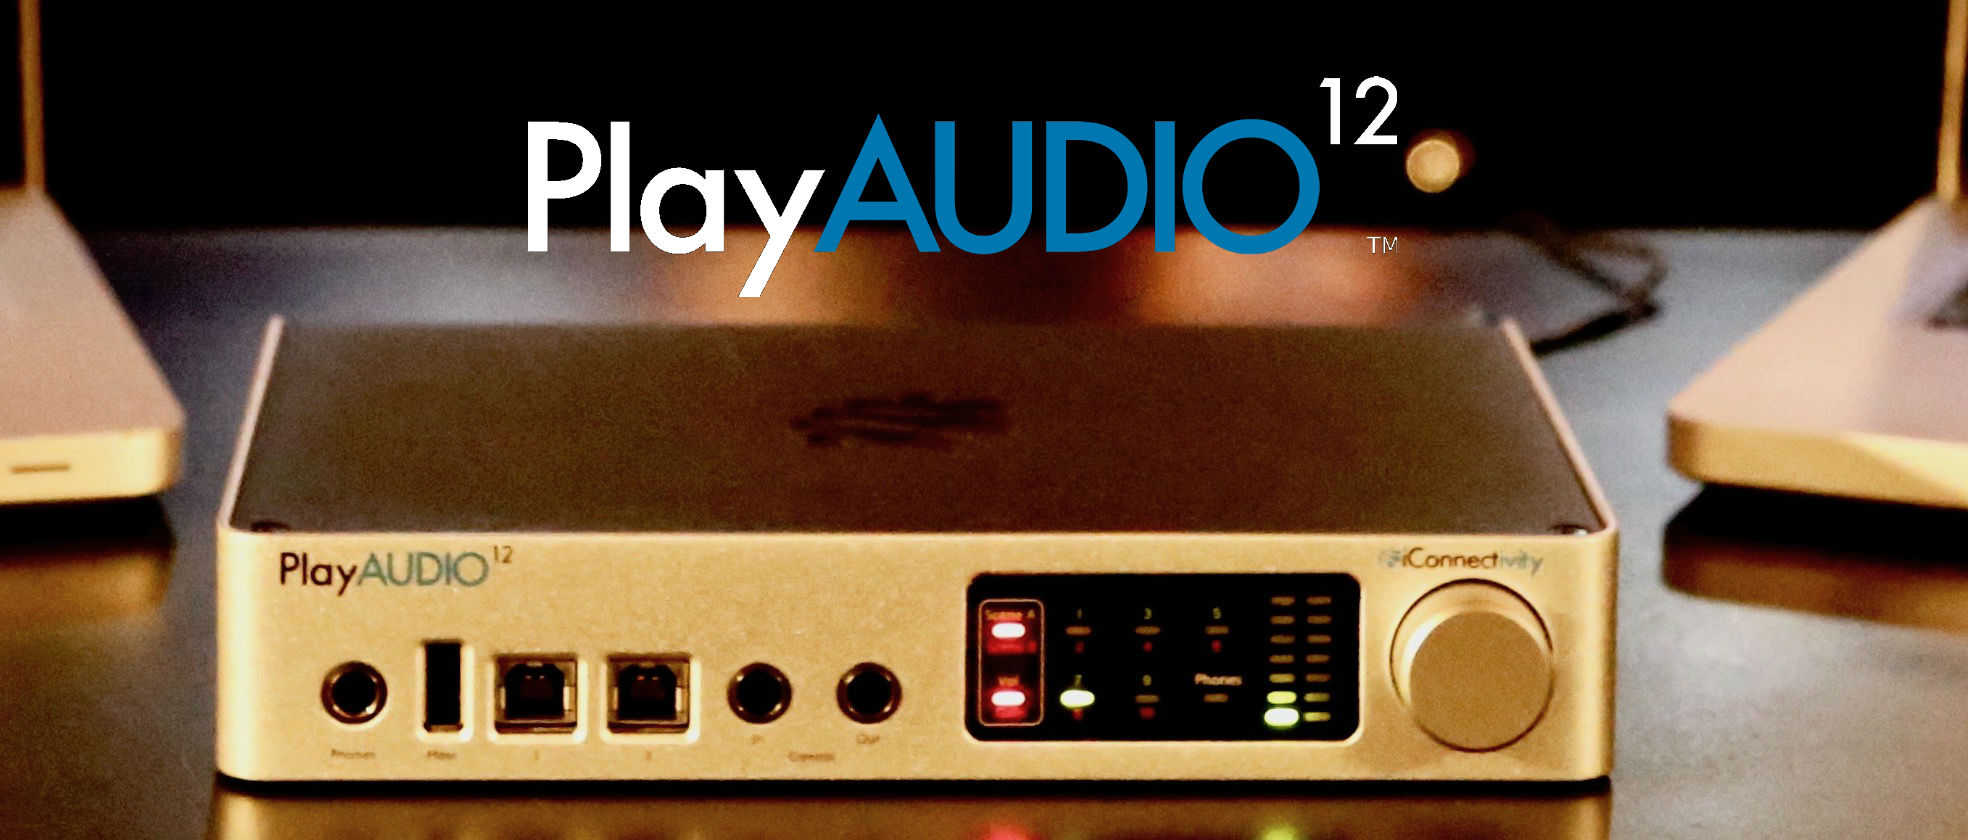 playaudio12_slider2